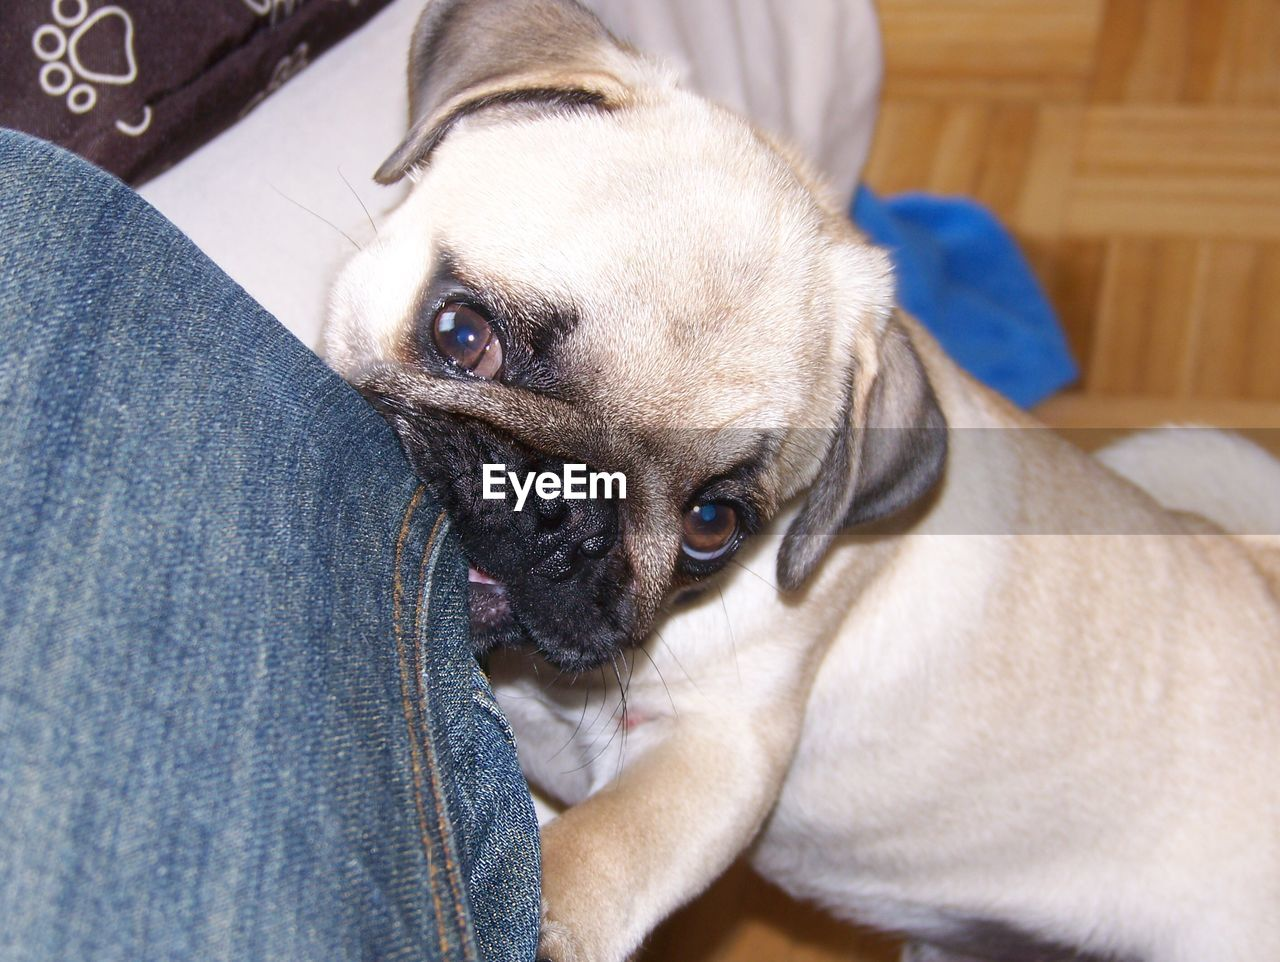 pets, domestic, domestic animals, one animal, mammal, dog, canine, vertebrate, indoors, looking at camera, close-up, portrait, young animal, one person, relaxation, human leg, human body part, pet owner, jeans